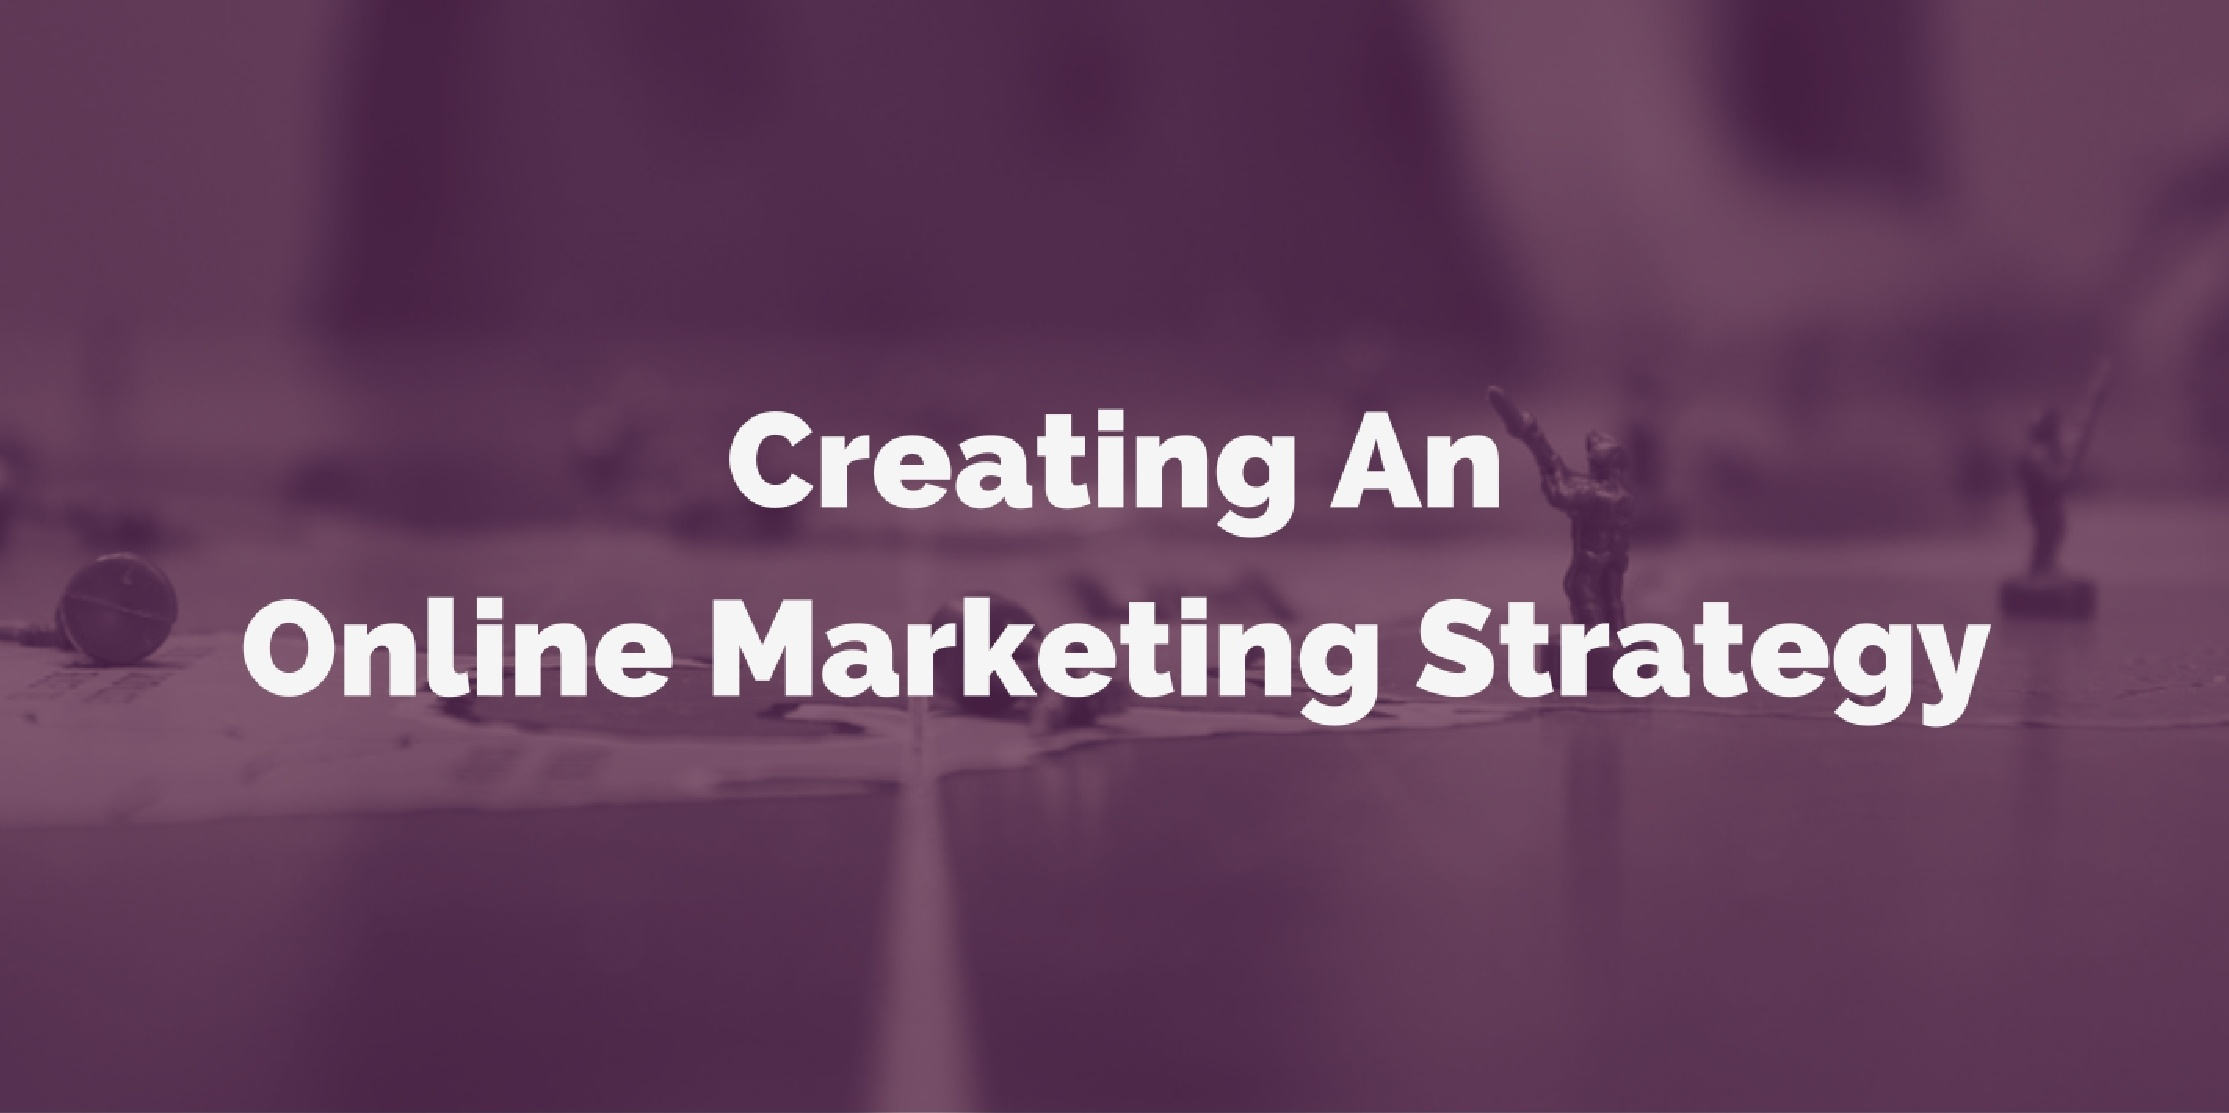 Creating An Online Marketing Strategy